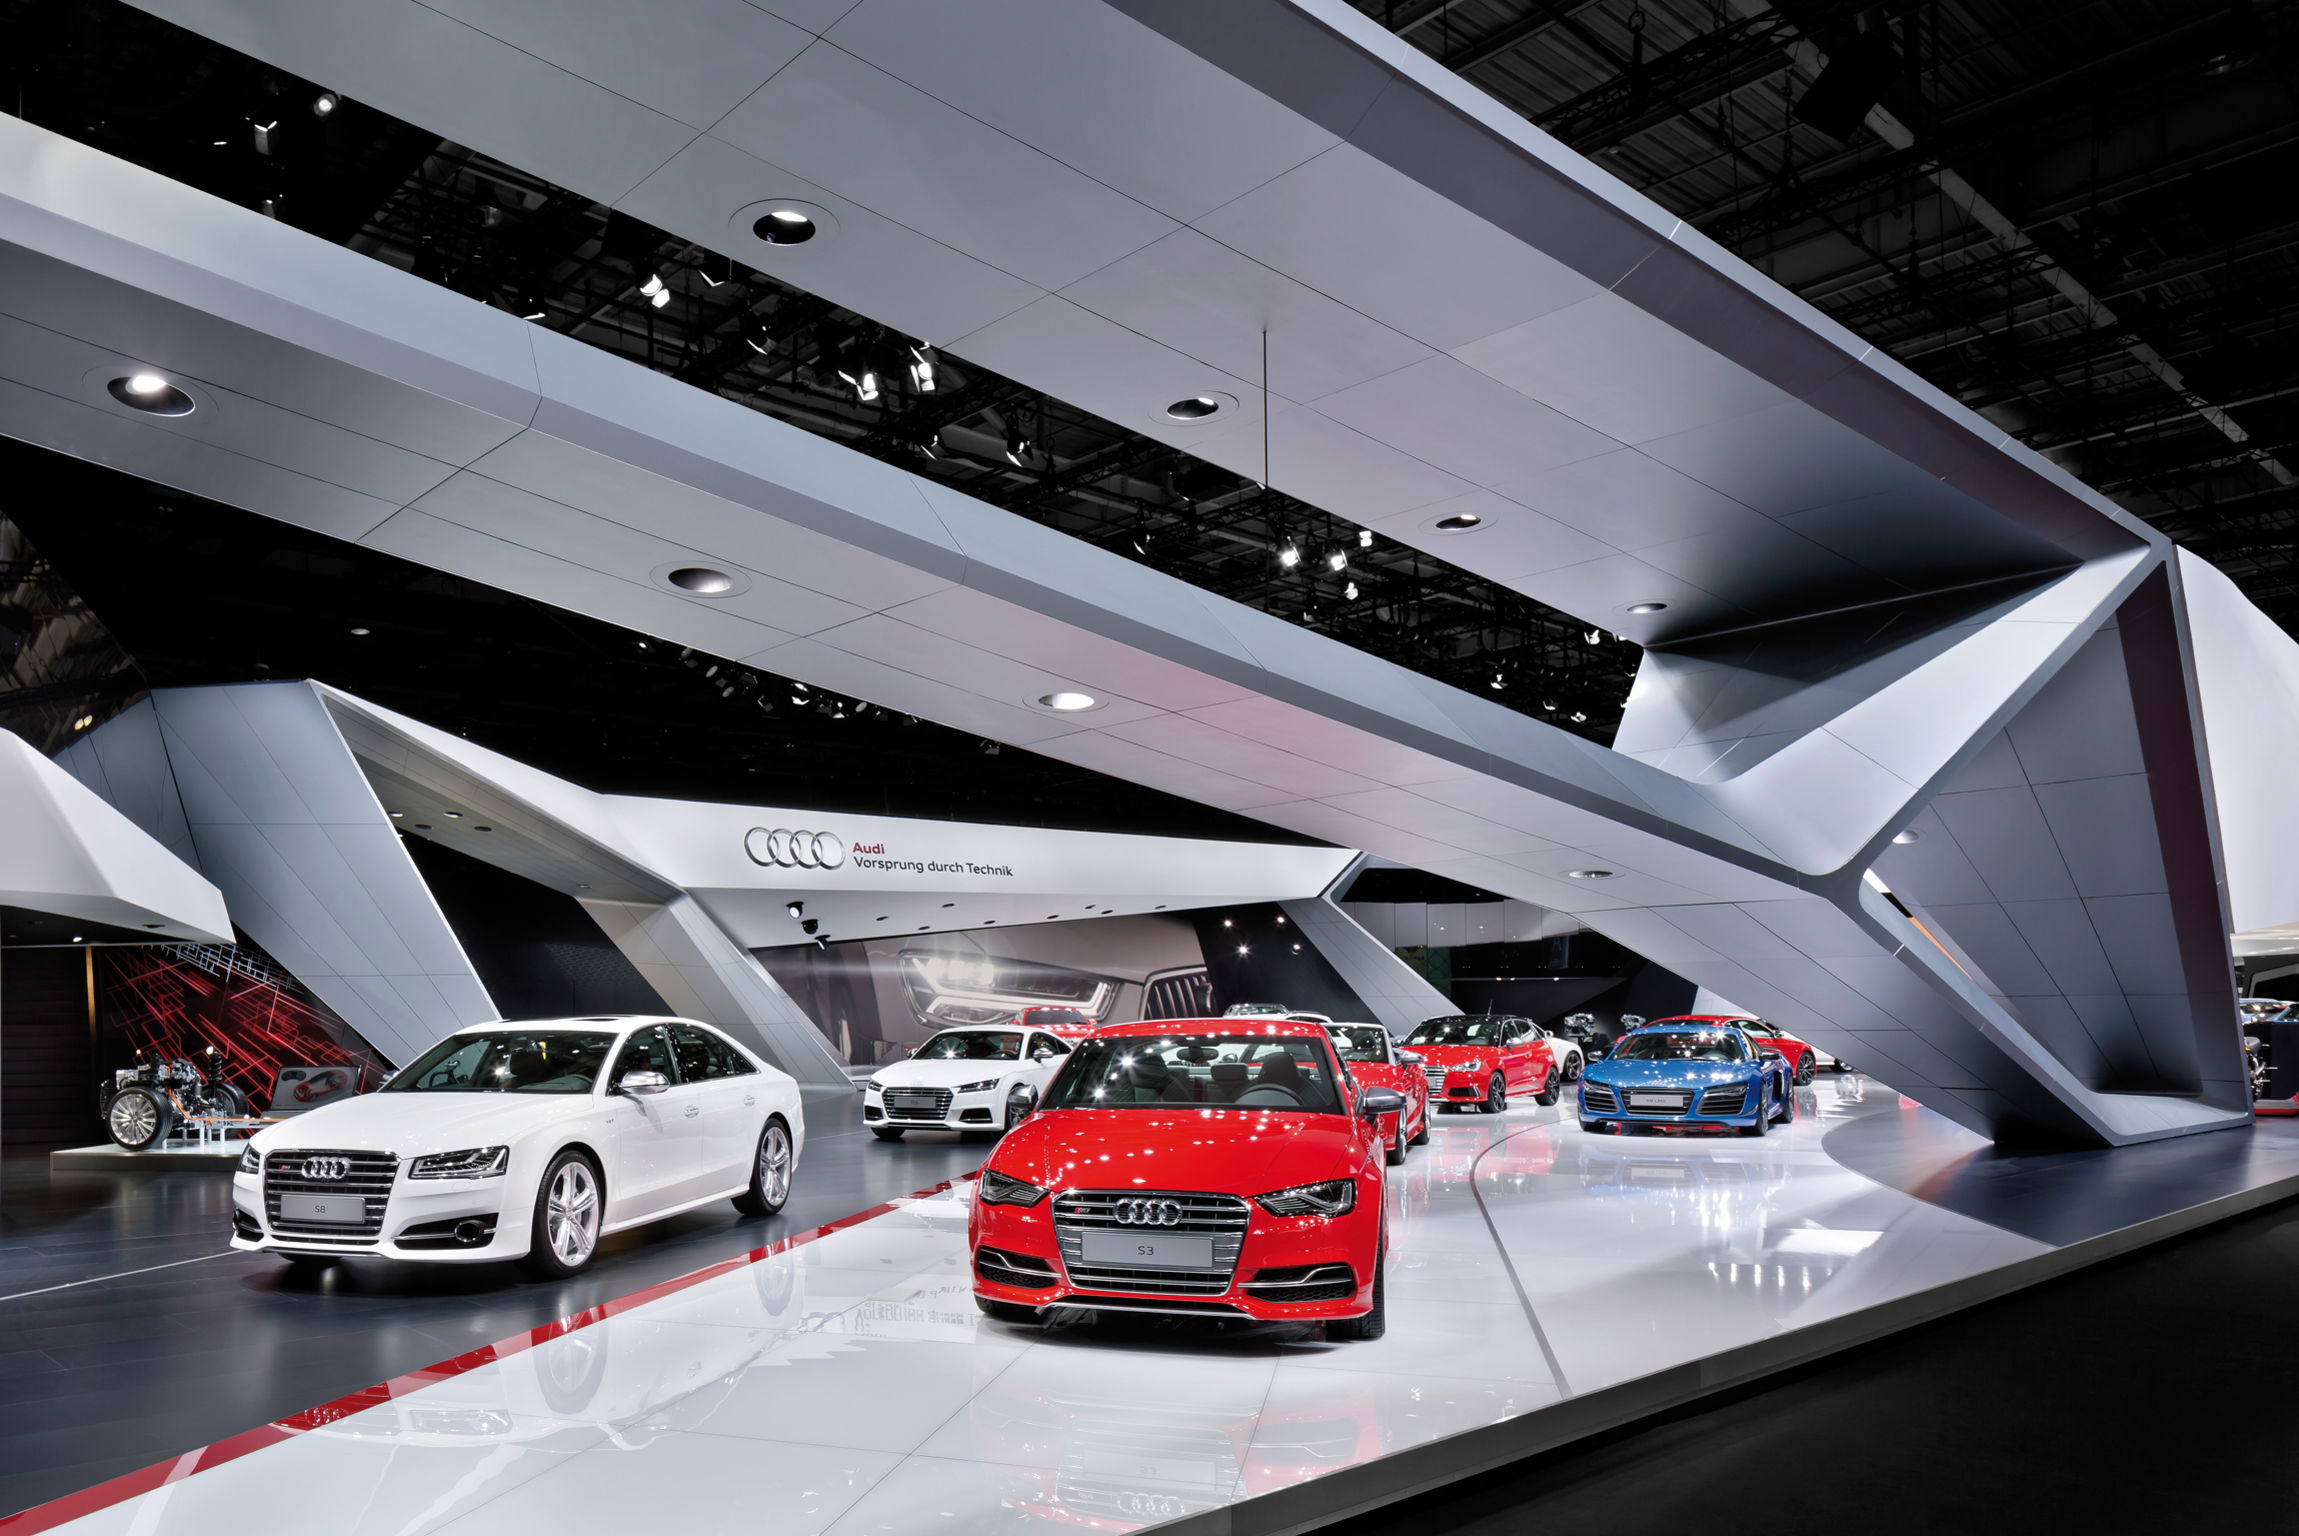 Audi paris motor show 14 entry if world design guide for Expo design paris